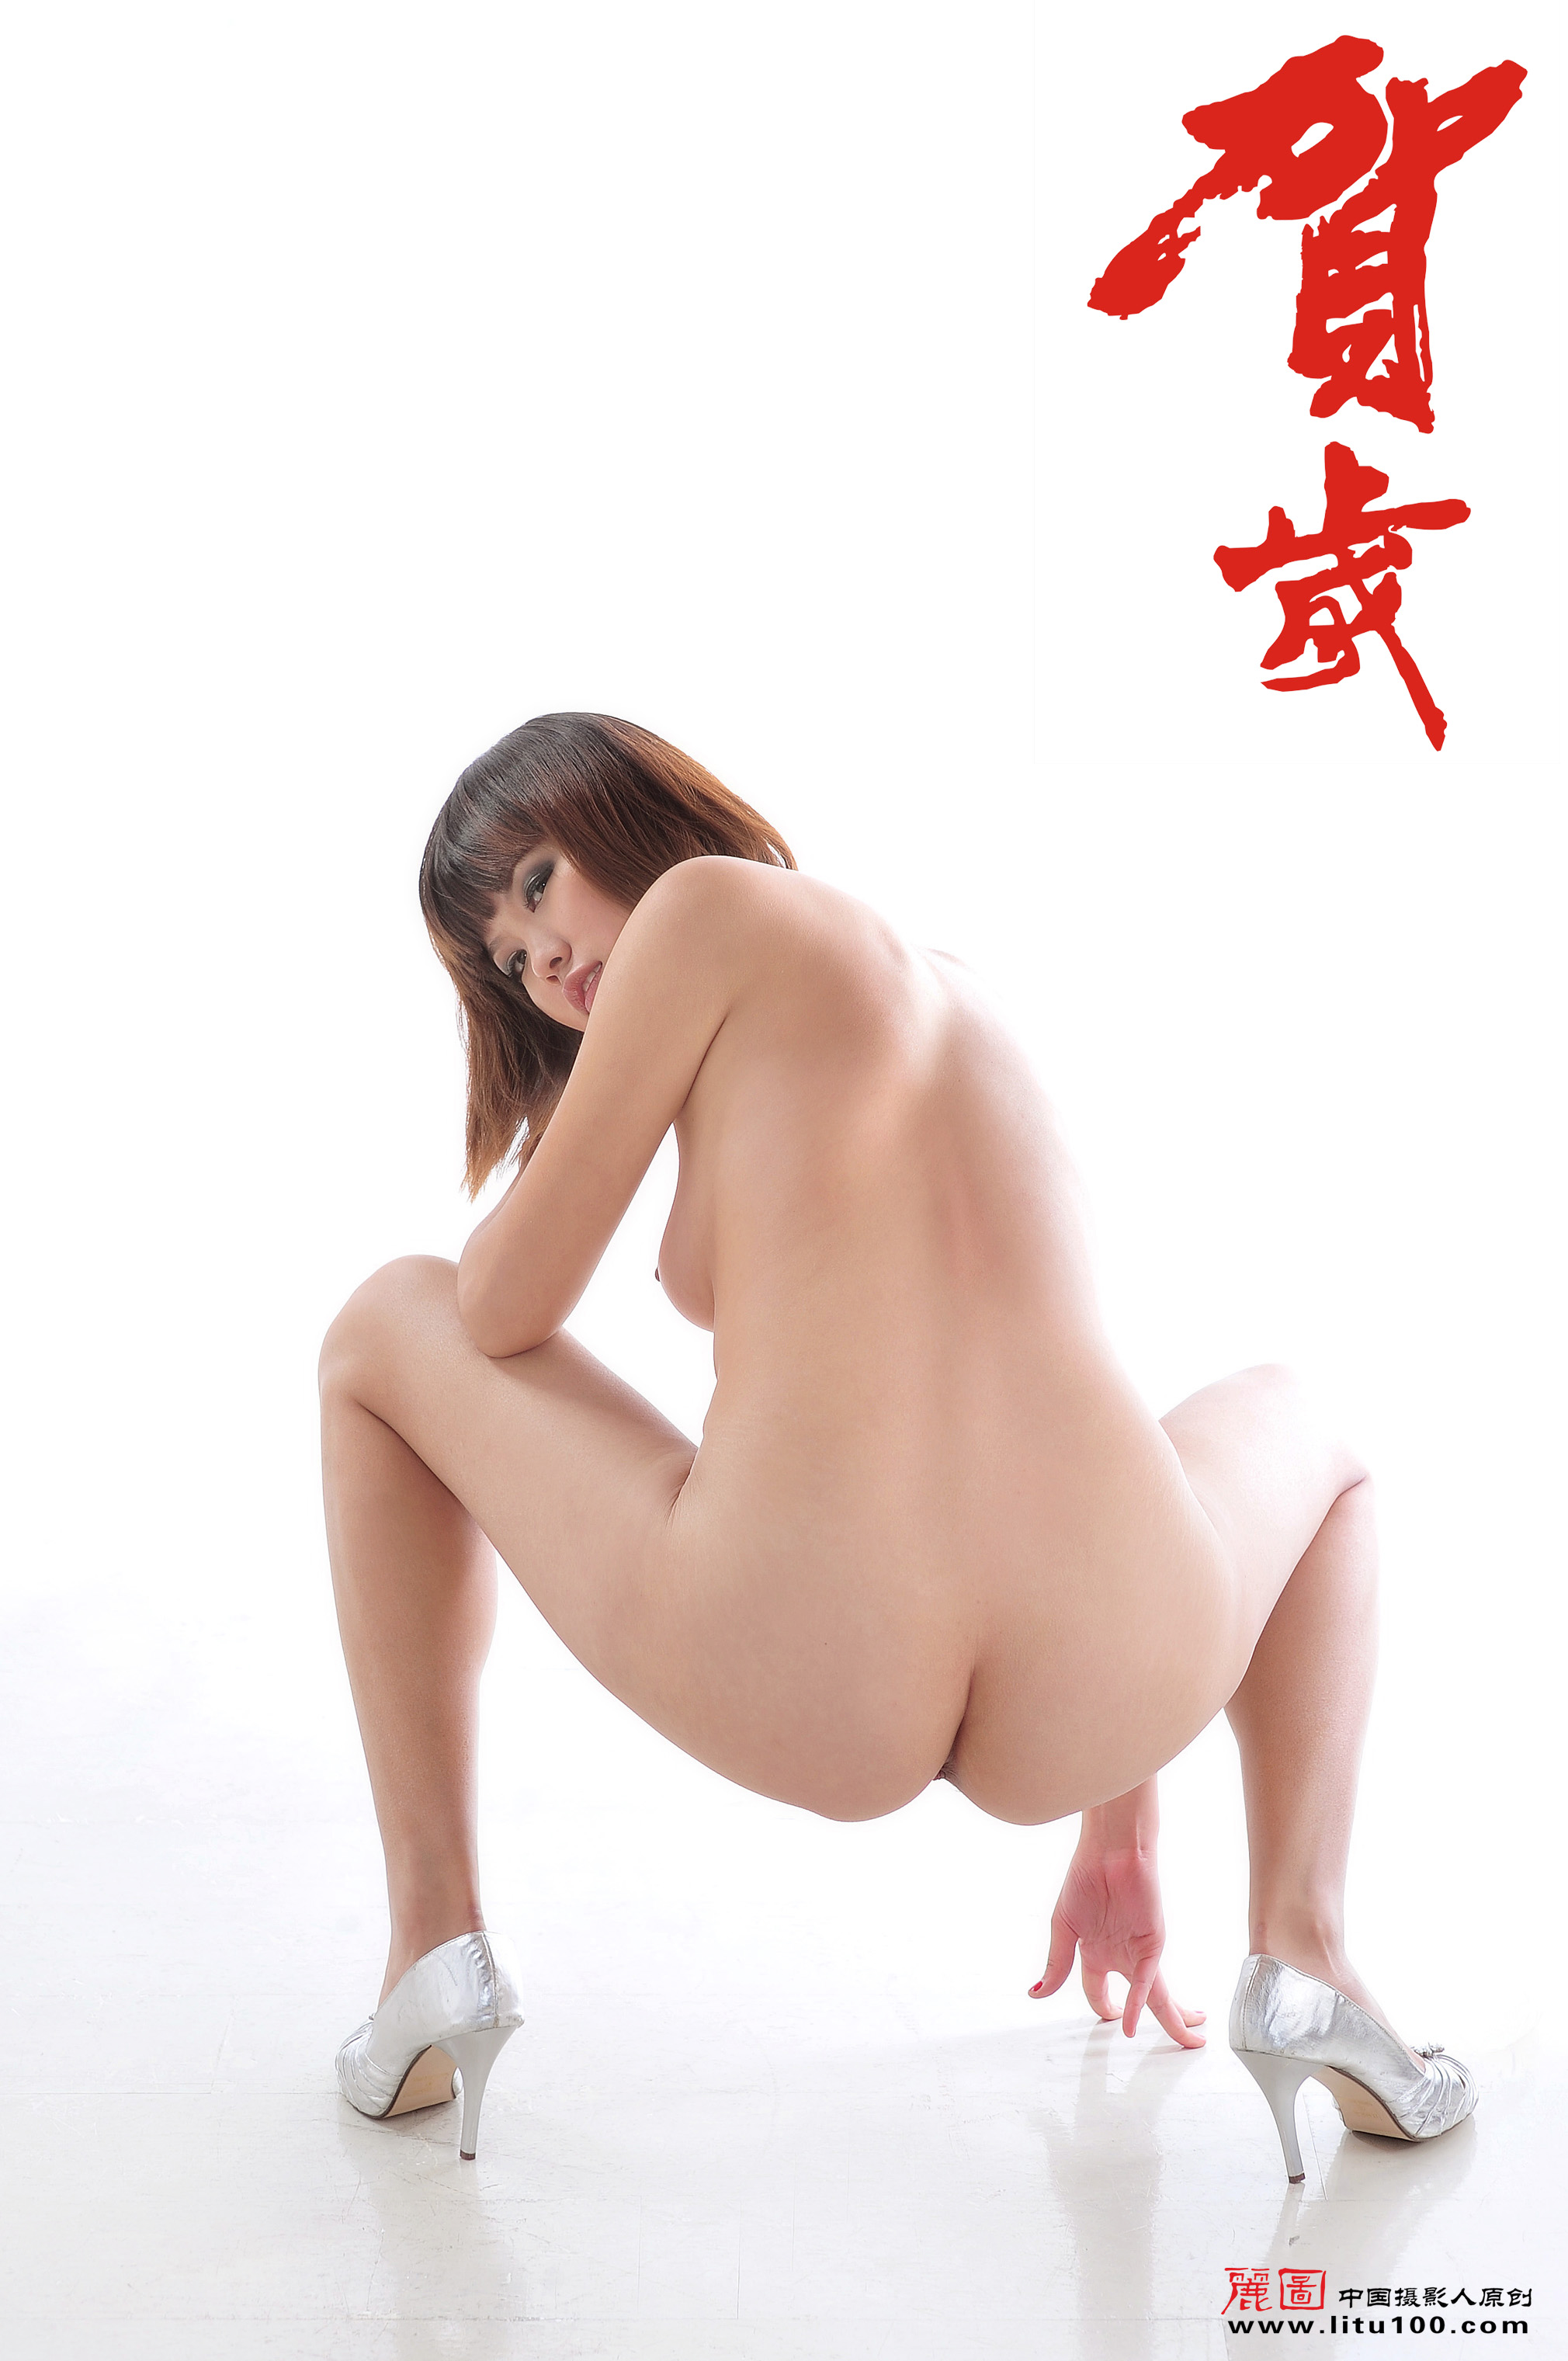 Naked asian women pics - Official Site